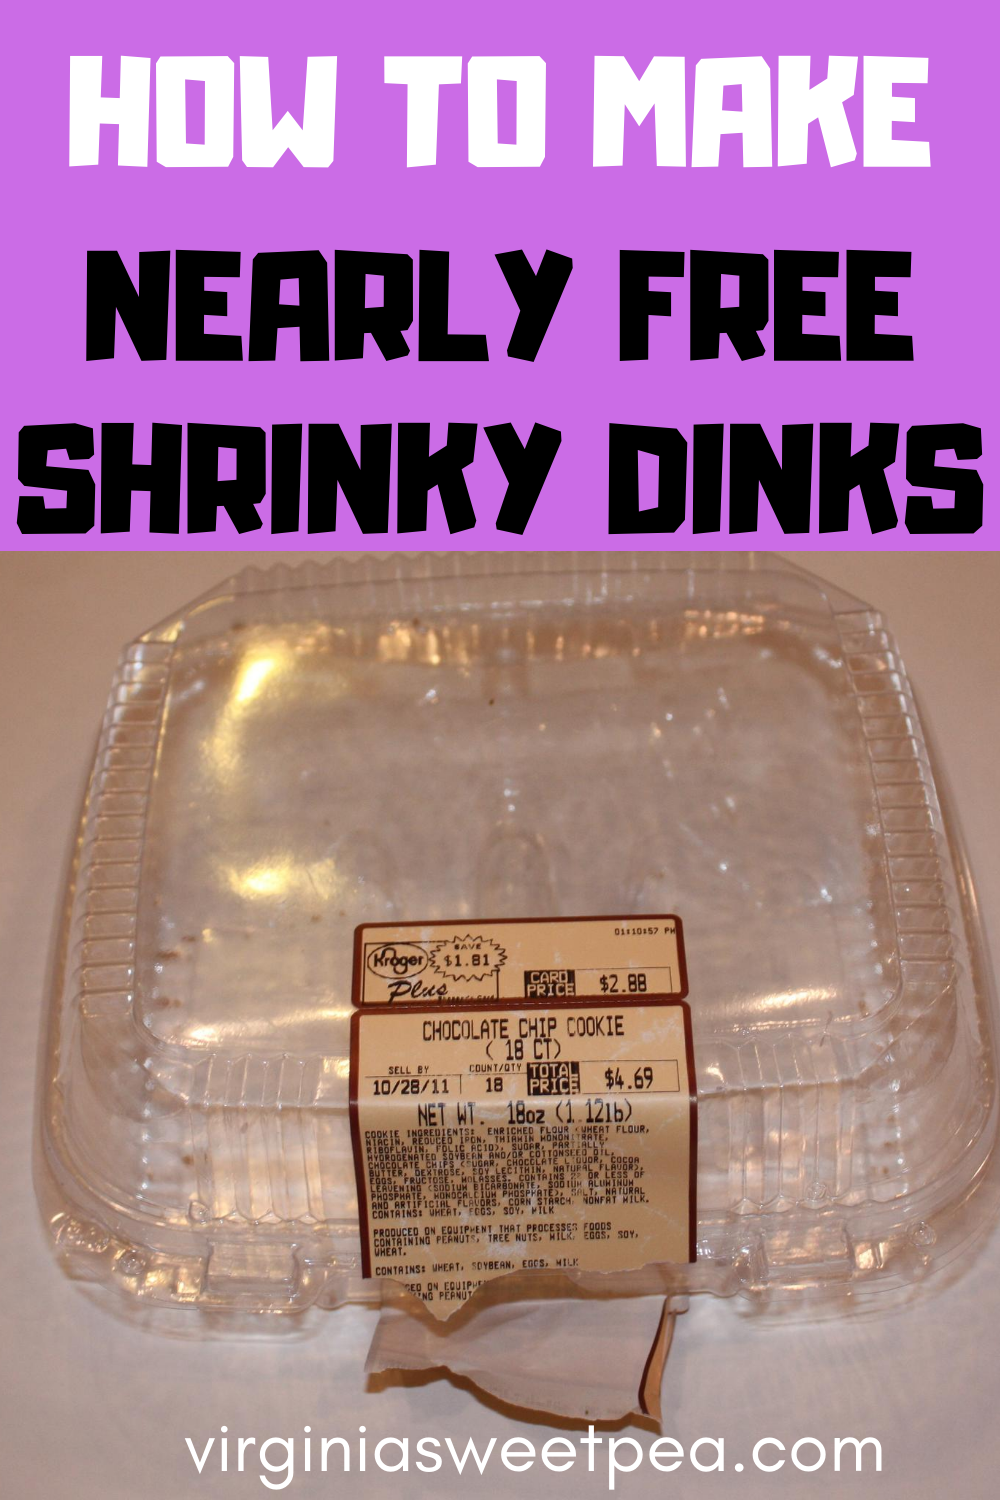 How to Make Nearly Free Shrinky Dinks - Looking for a fun craft to do with your kids with limited supplies? How about making your own nearly free shrinky dinks using plastic from the recycle bin? #shrinkydinks #diyshrinkydinks #kidscraft via @spaula